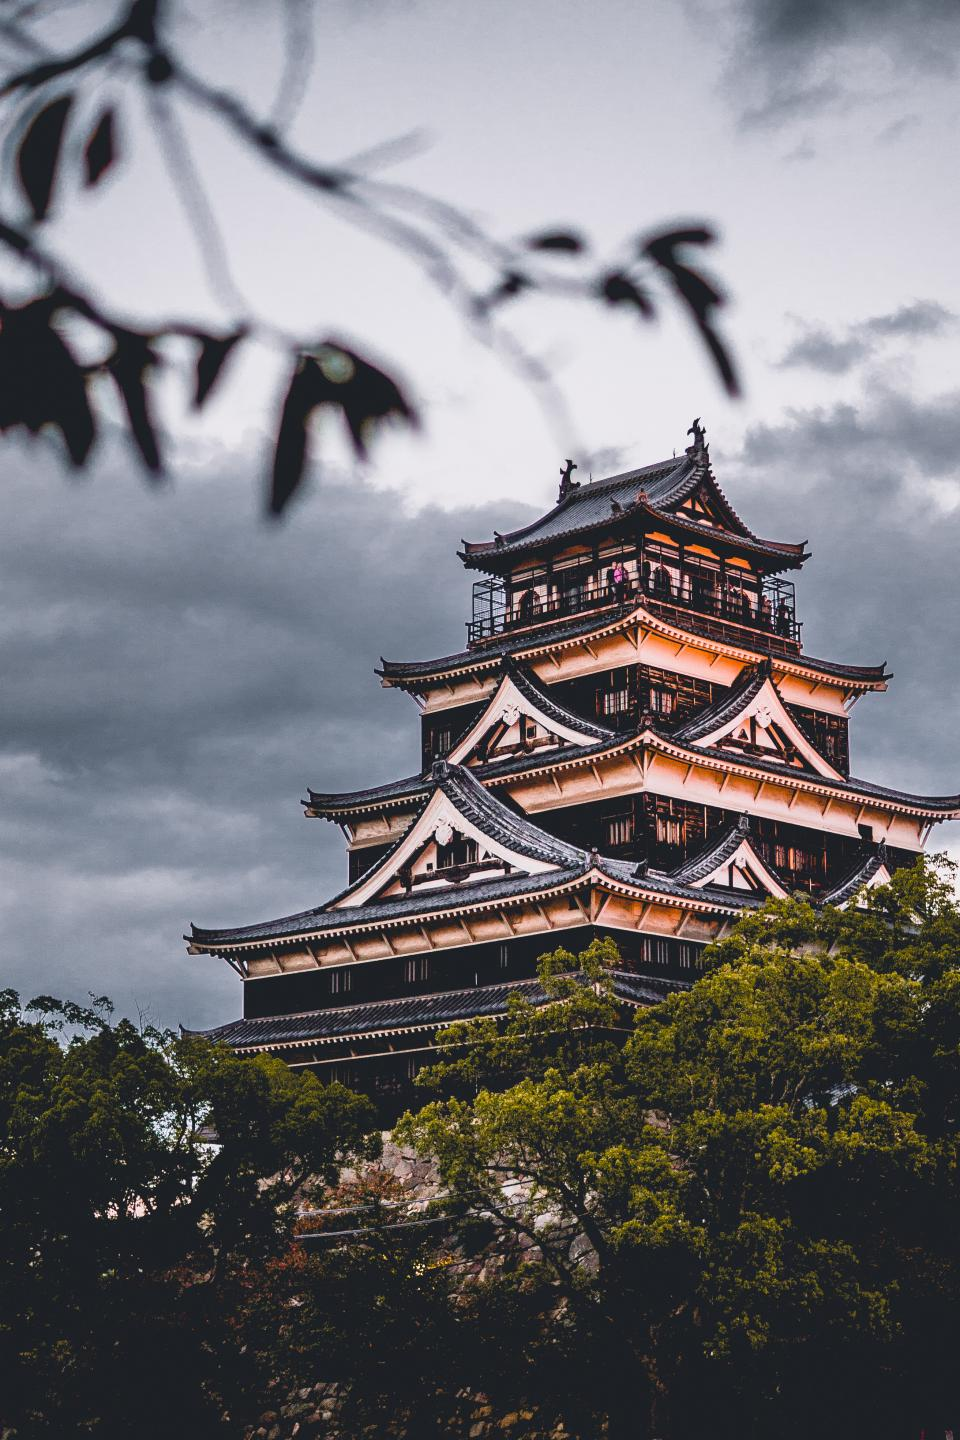 architecture building infrastructure design hiroshima castle japan travel trees plant nature